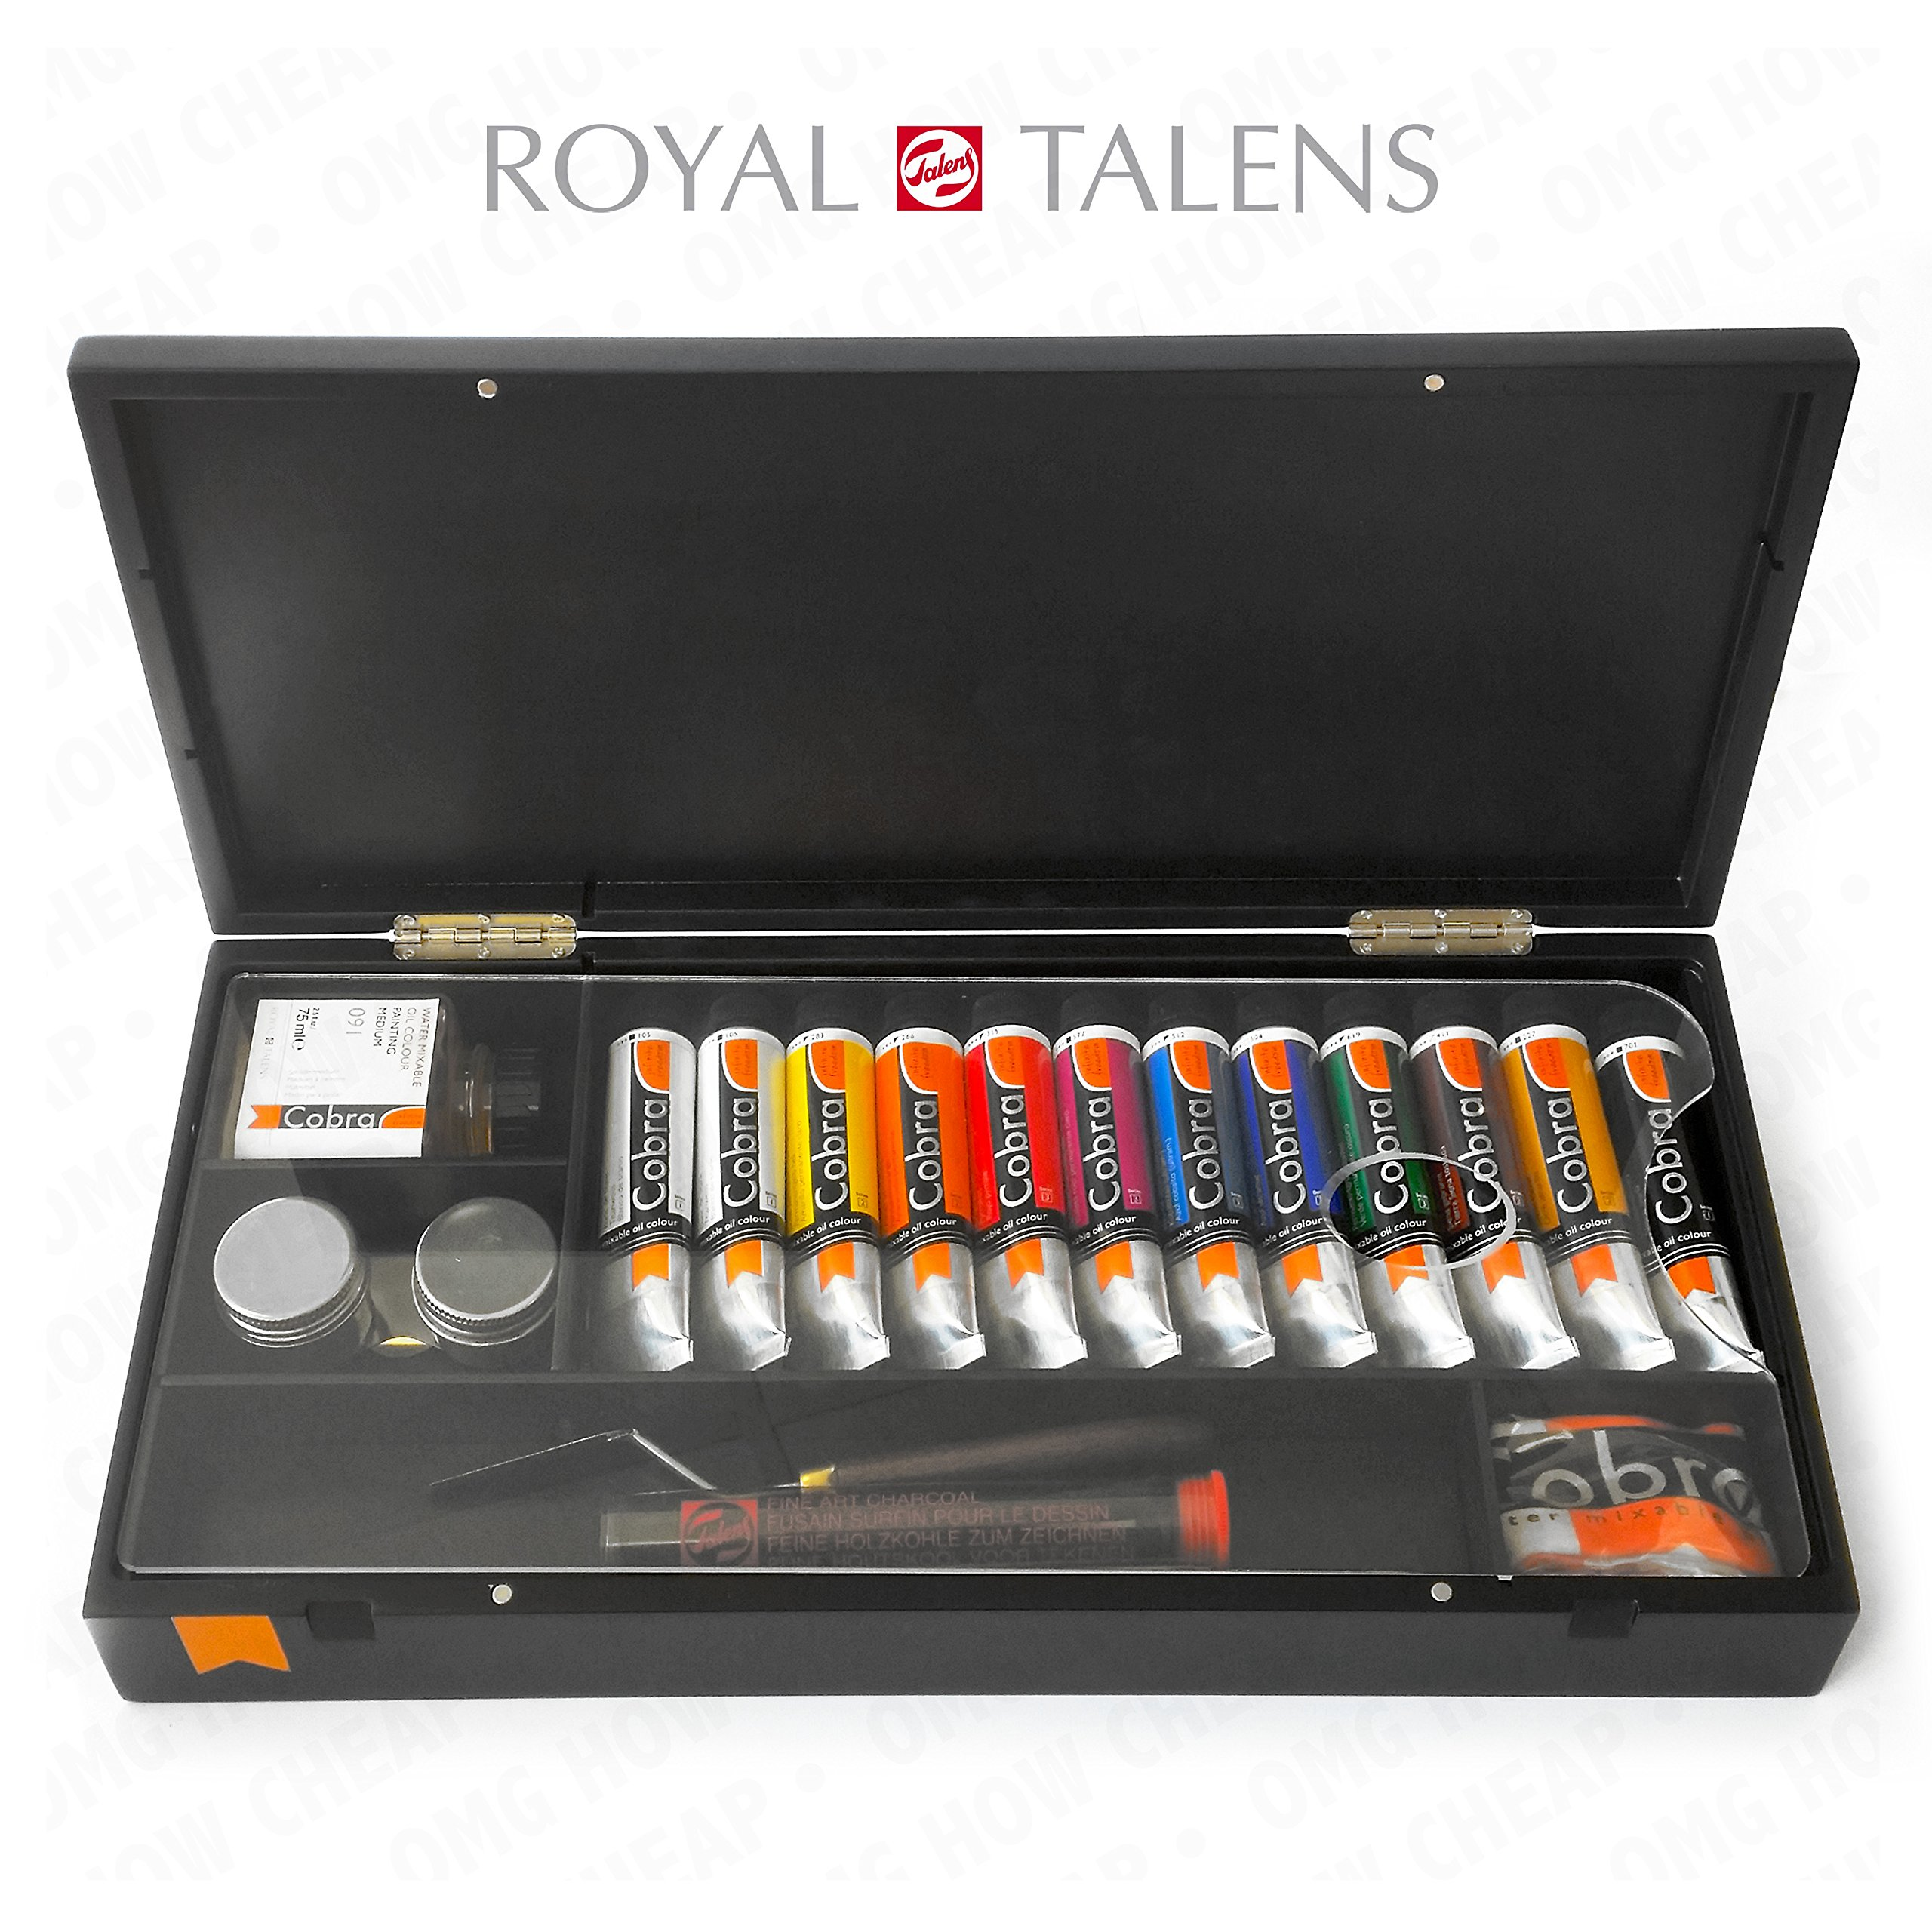 Royal Talens - Cobra Artist Water Mixable Oil Art Set in Premium Black Gift Box - With Paints, Palette, and Brushes